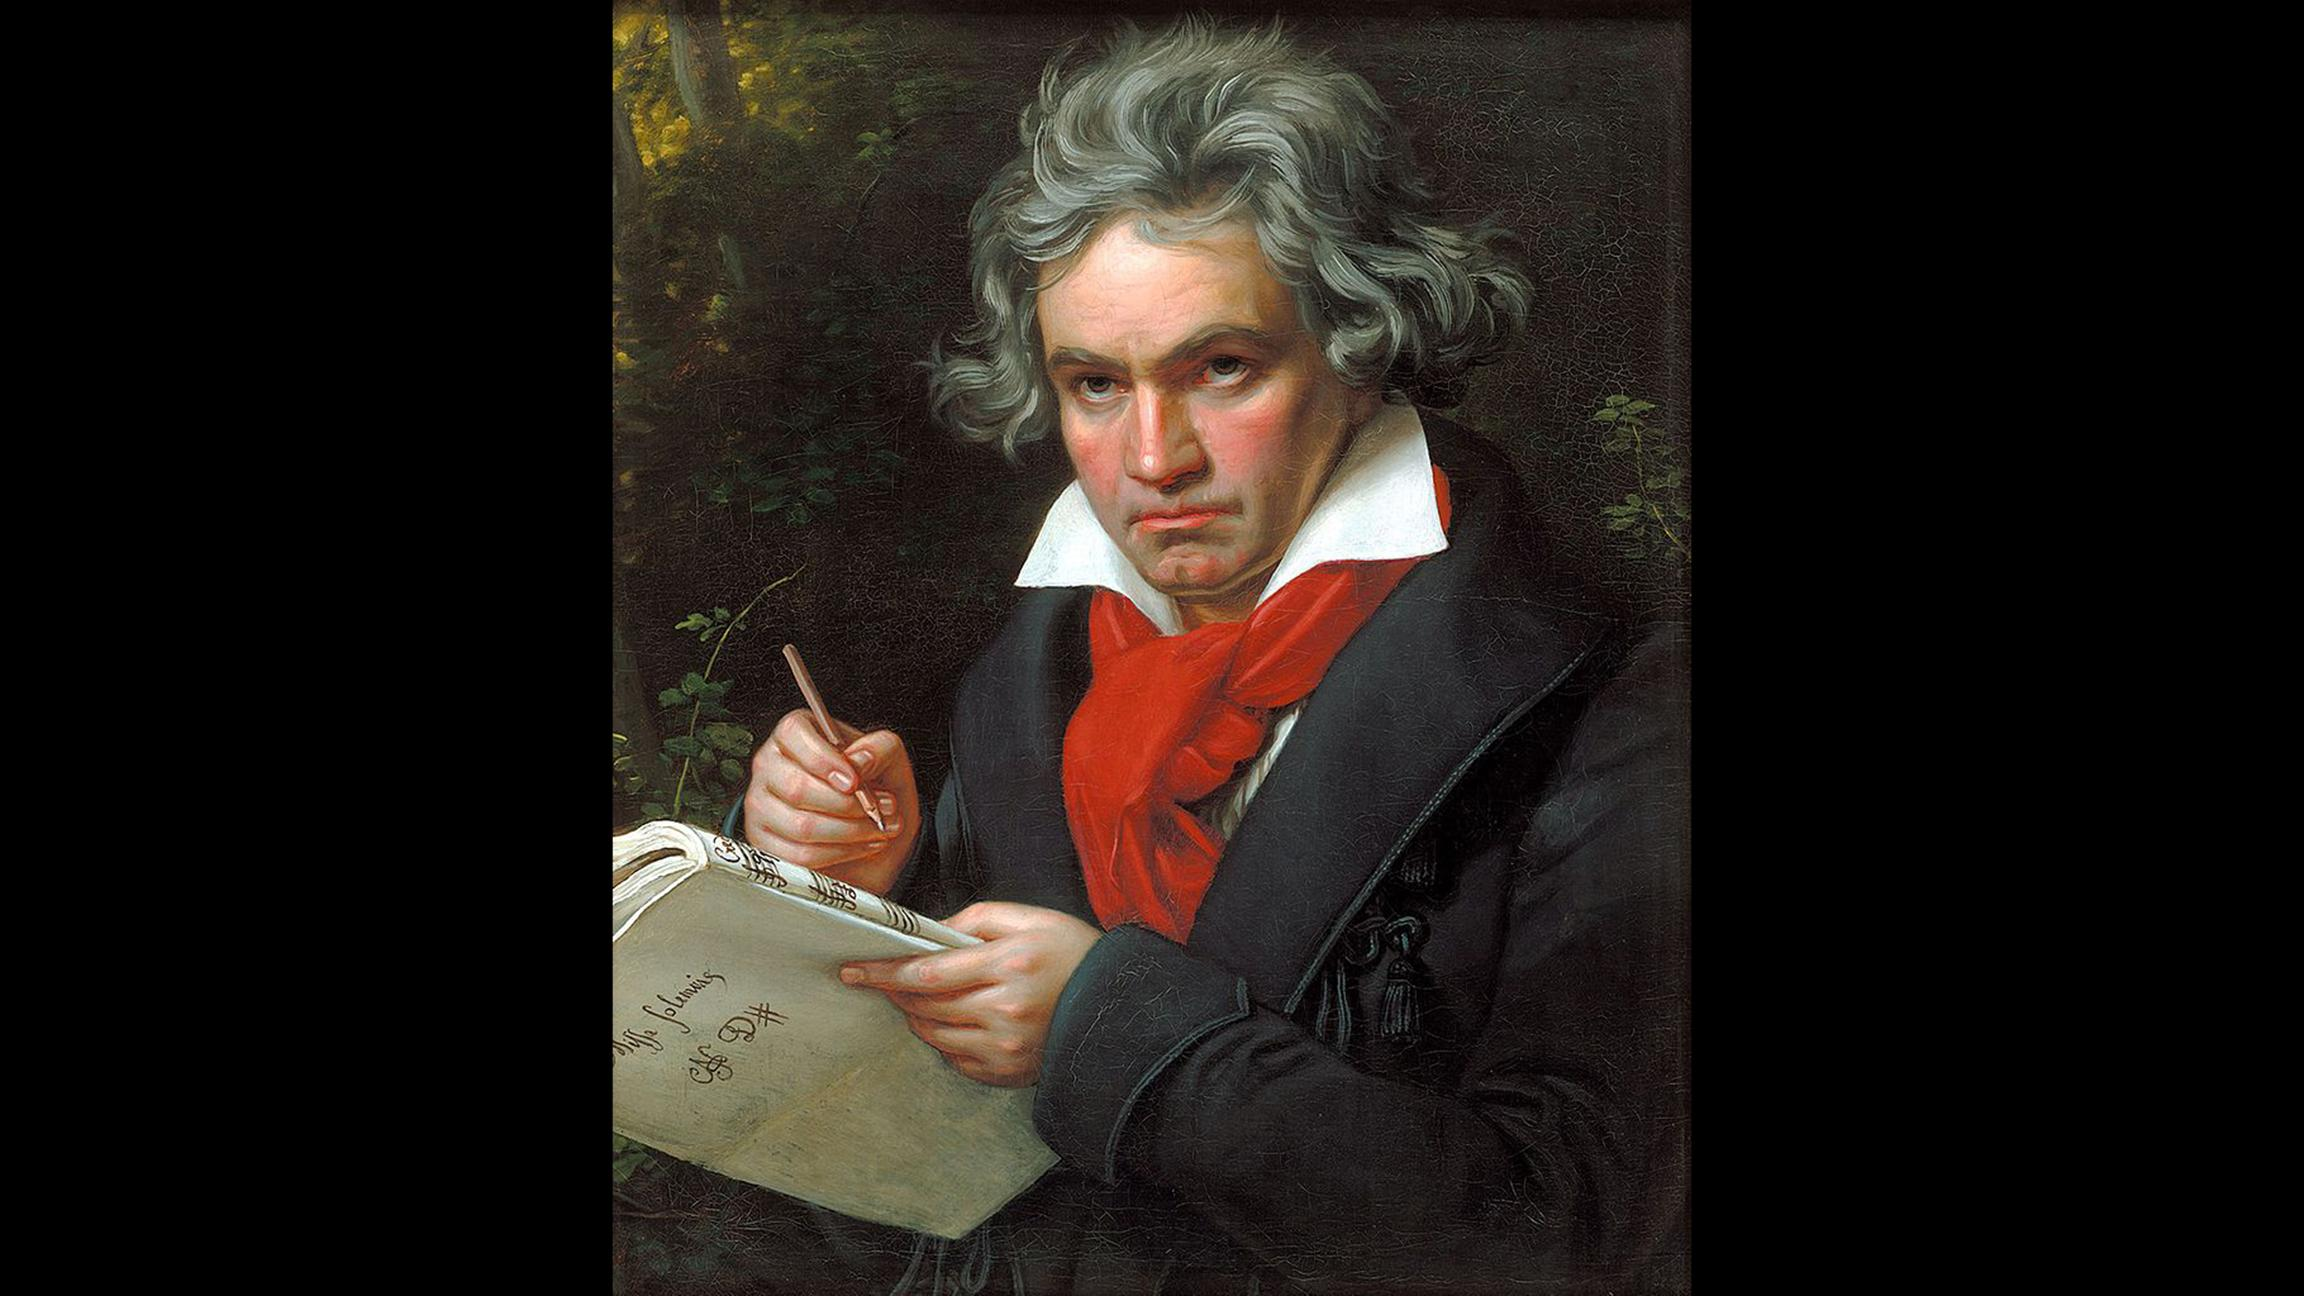 Yet he doesn't look a day over 200: Celebrate Beethoven's 246th birthday Friday.